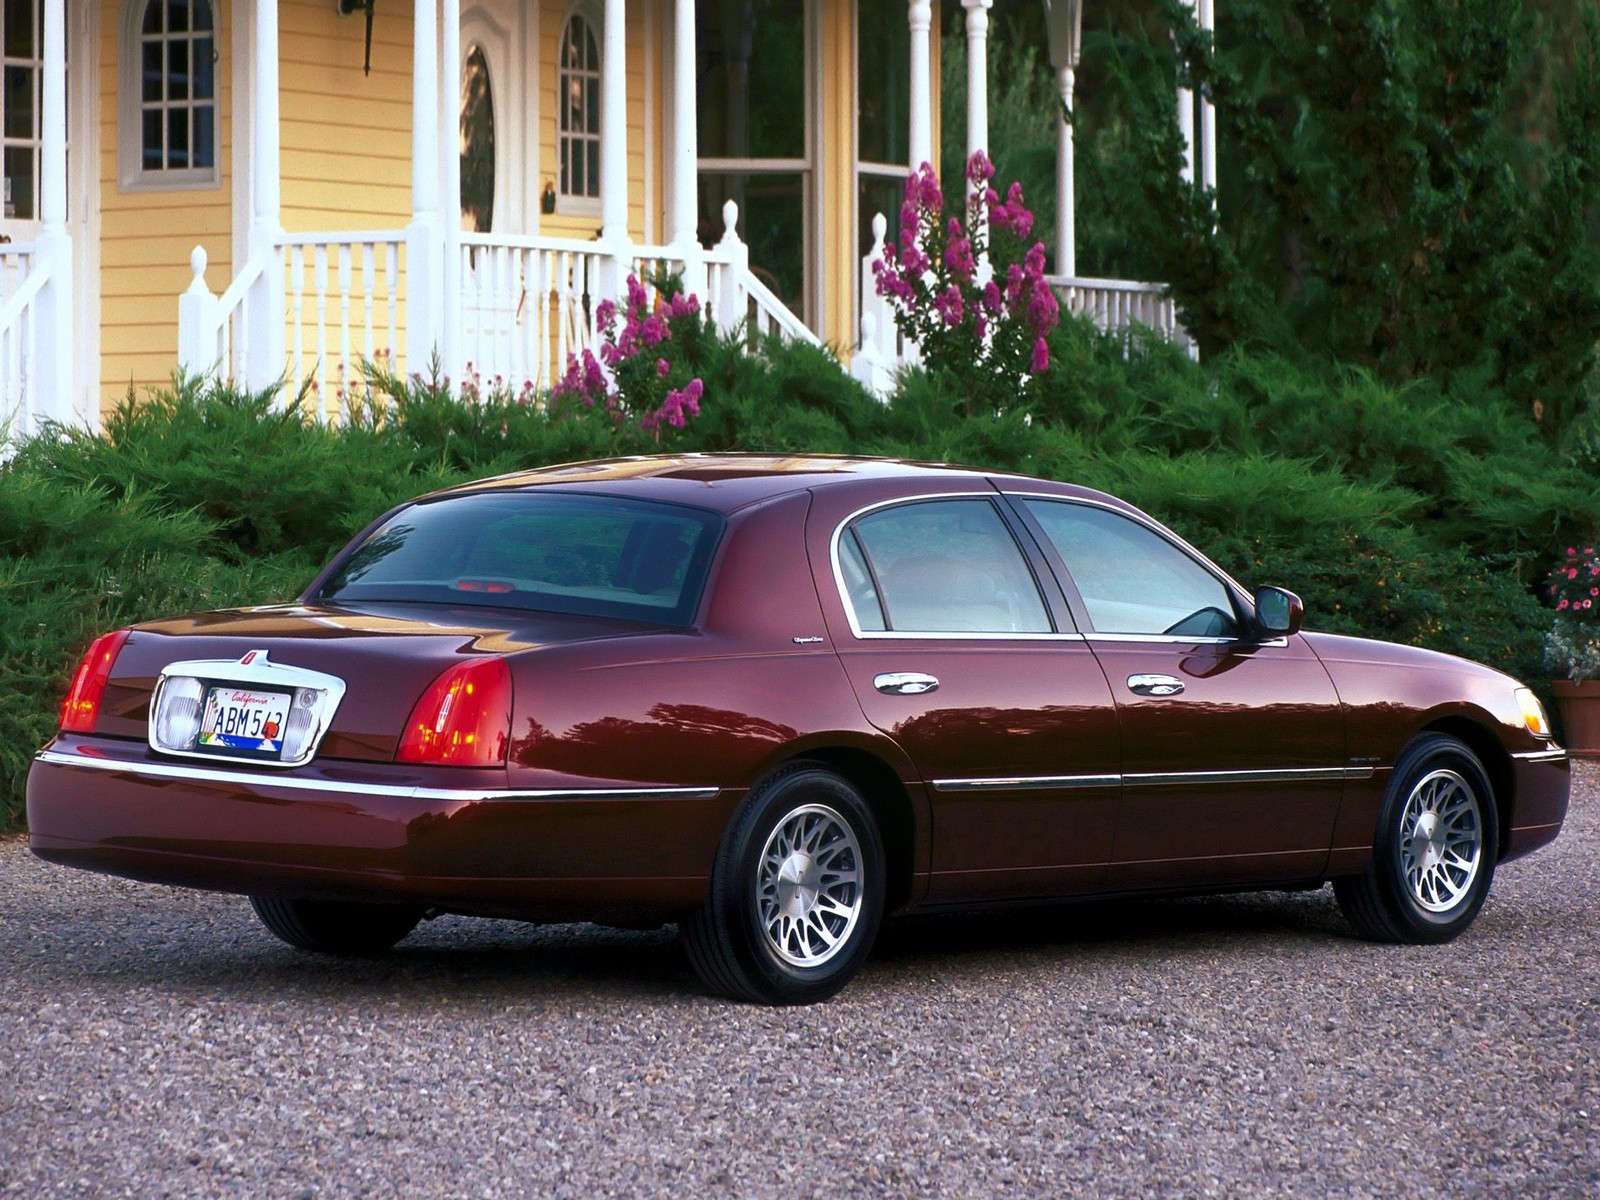 restorations olympus lincoln vehicledelivery camera digital town towncar plum cars crazy